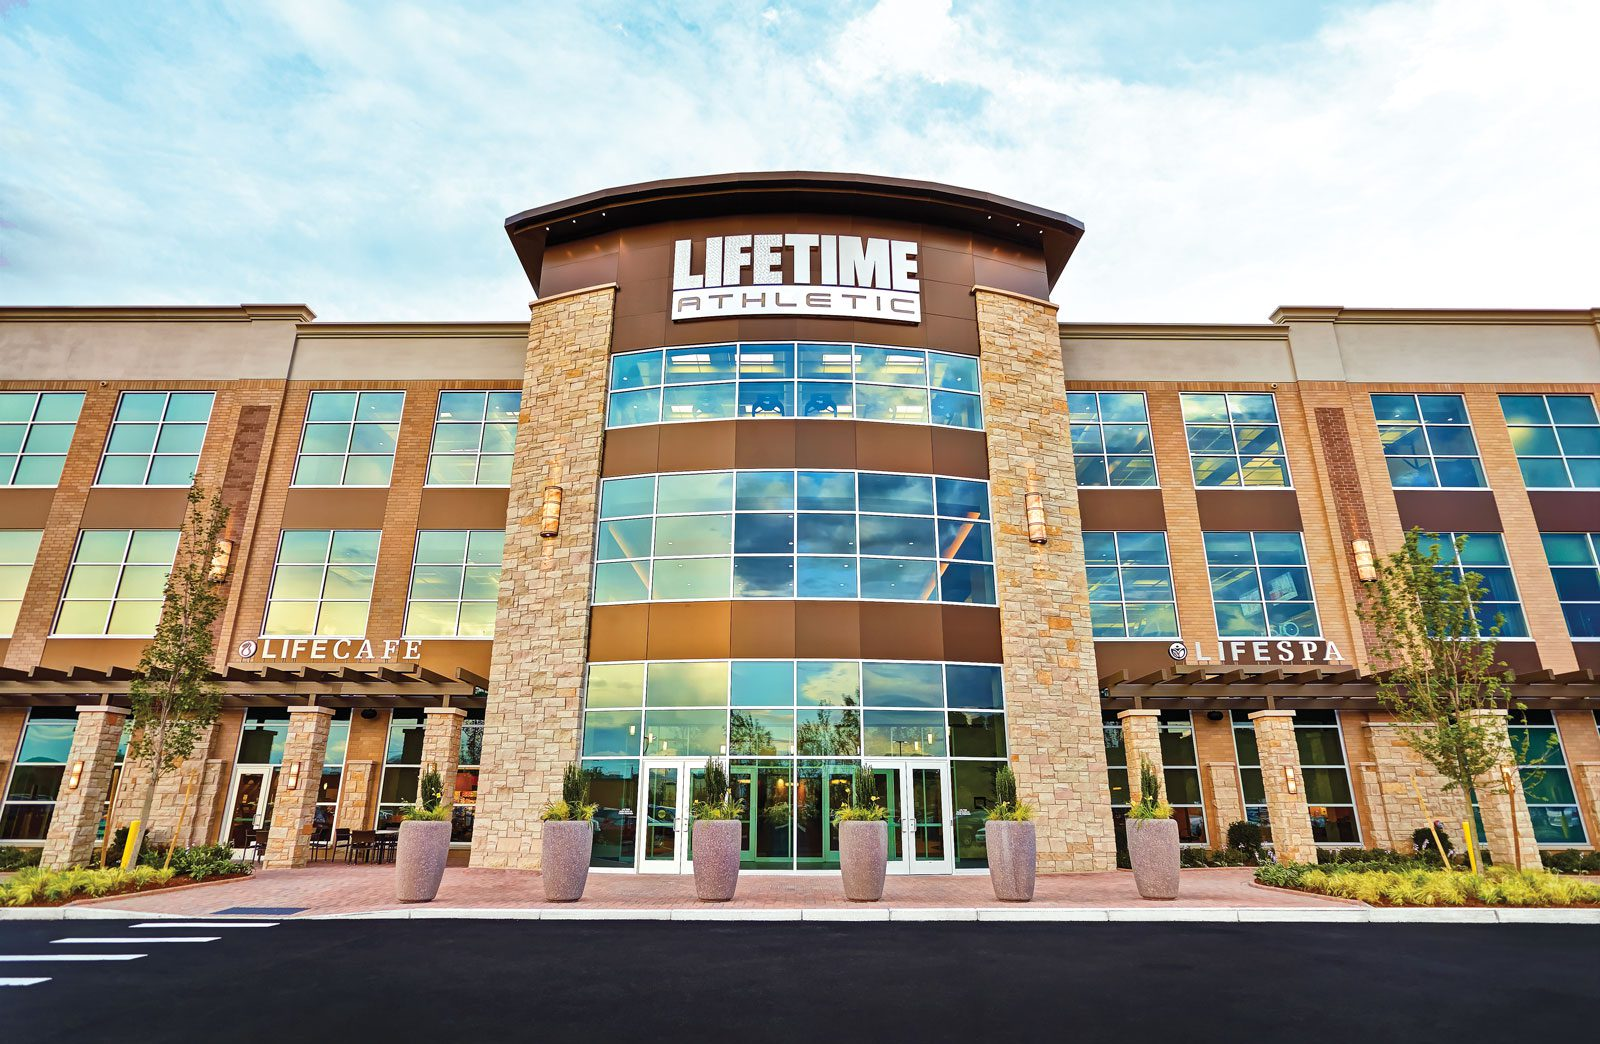 Life Time Fitness Pulls the Plug on Its In-Club Cable News Channels |  Observer